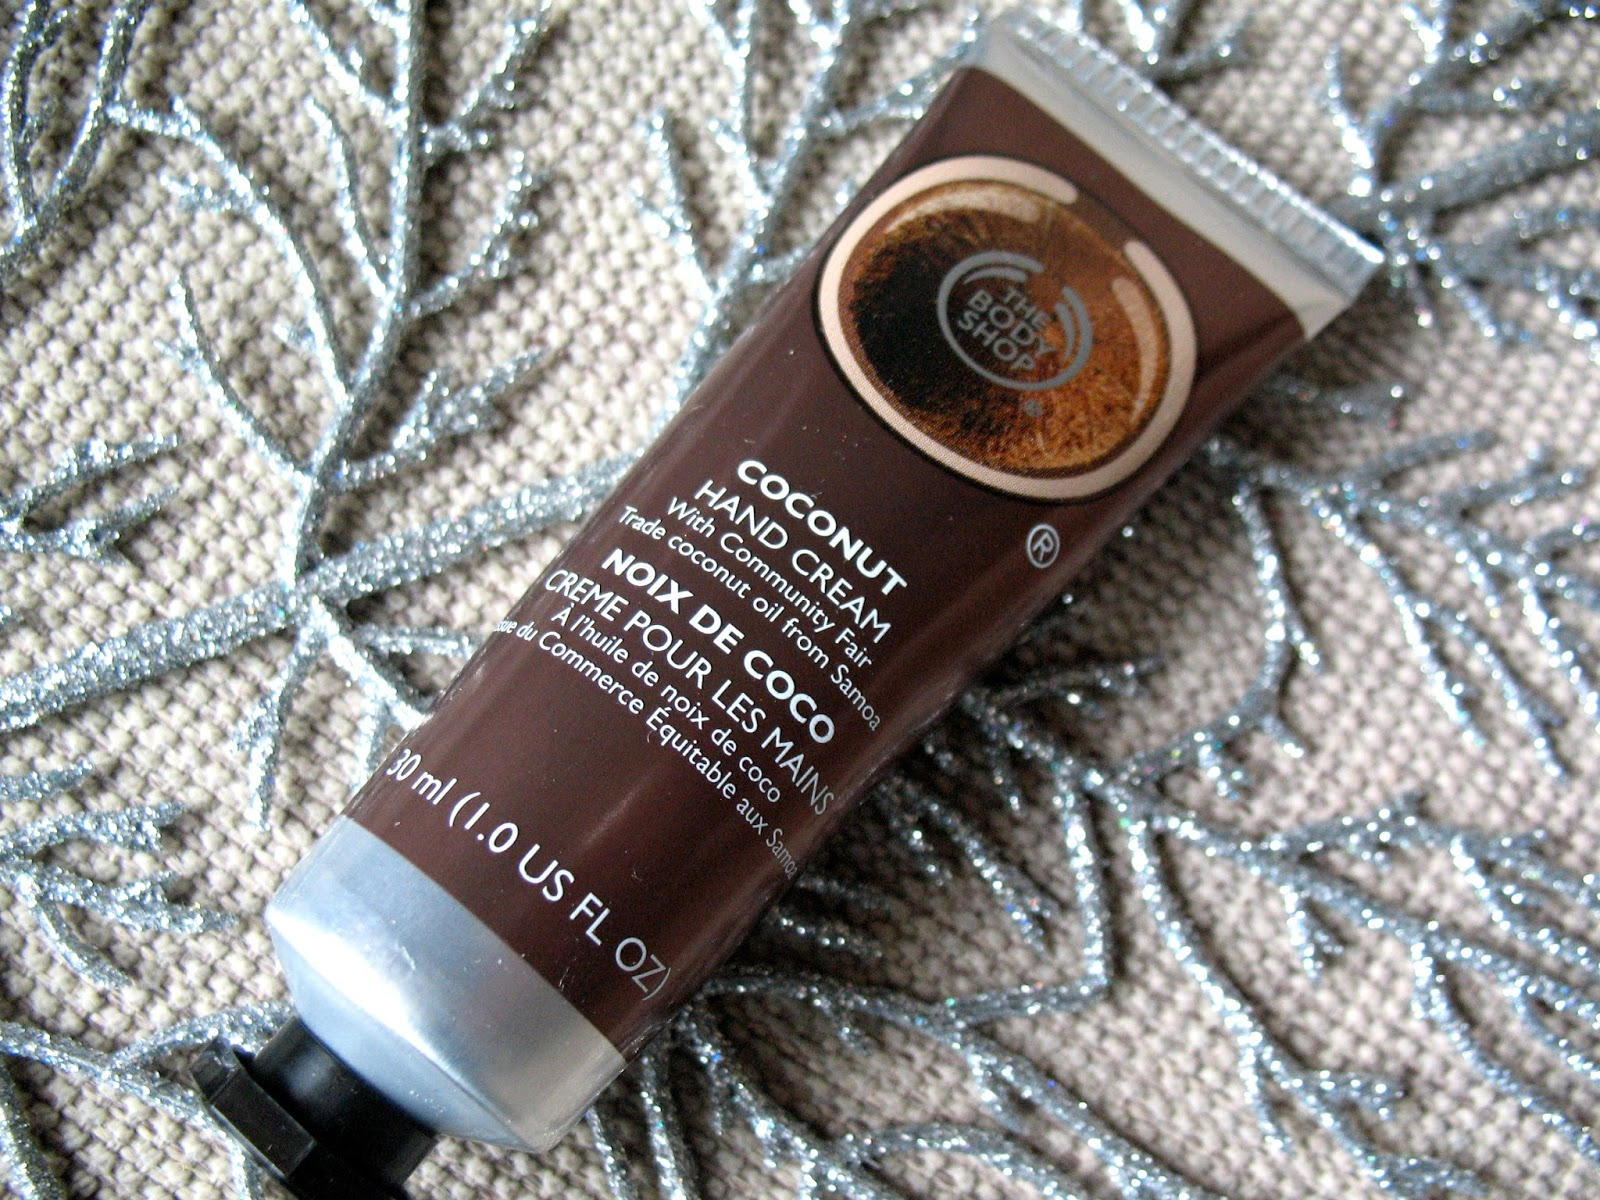 The_body_shop_coconut_hand_cream_review_beauty_blogger_photo_01